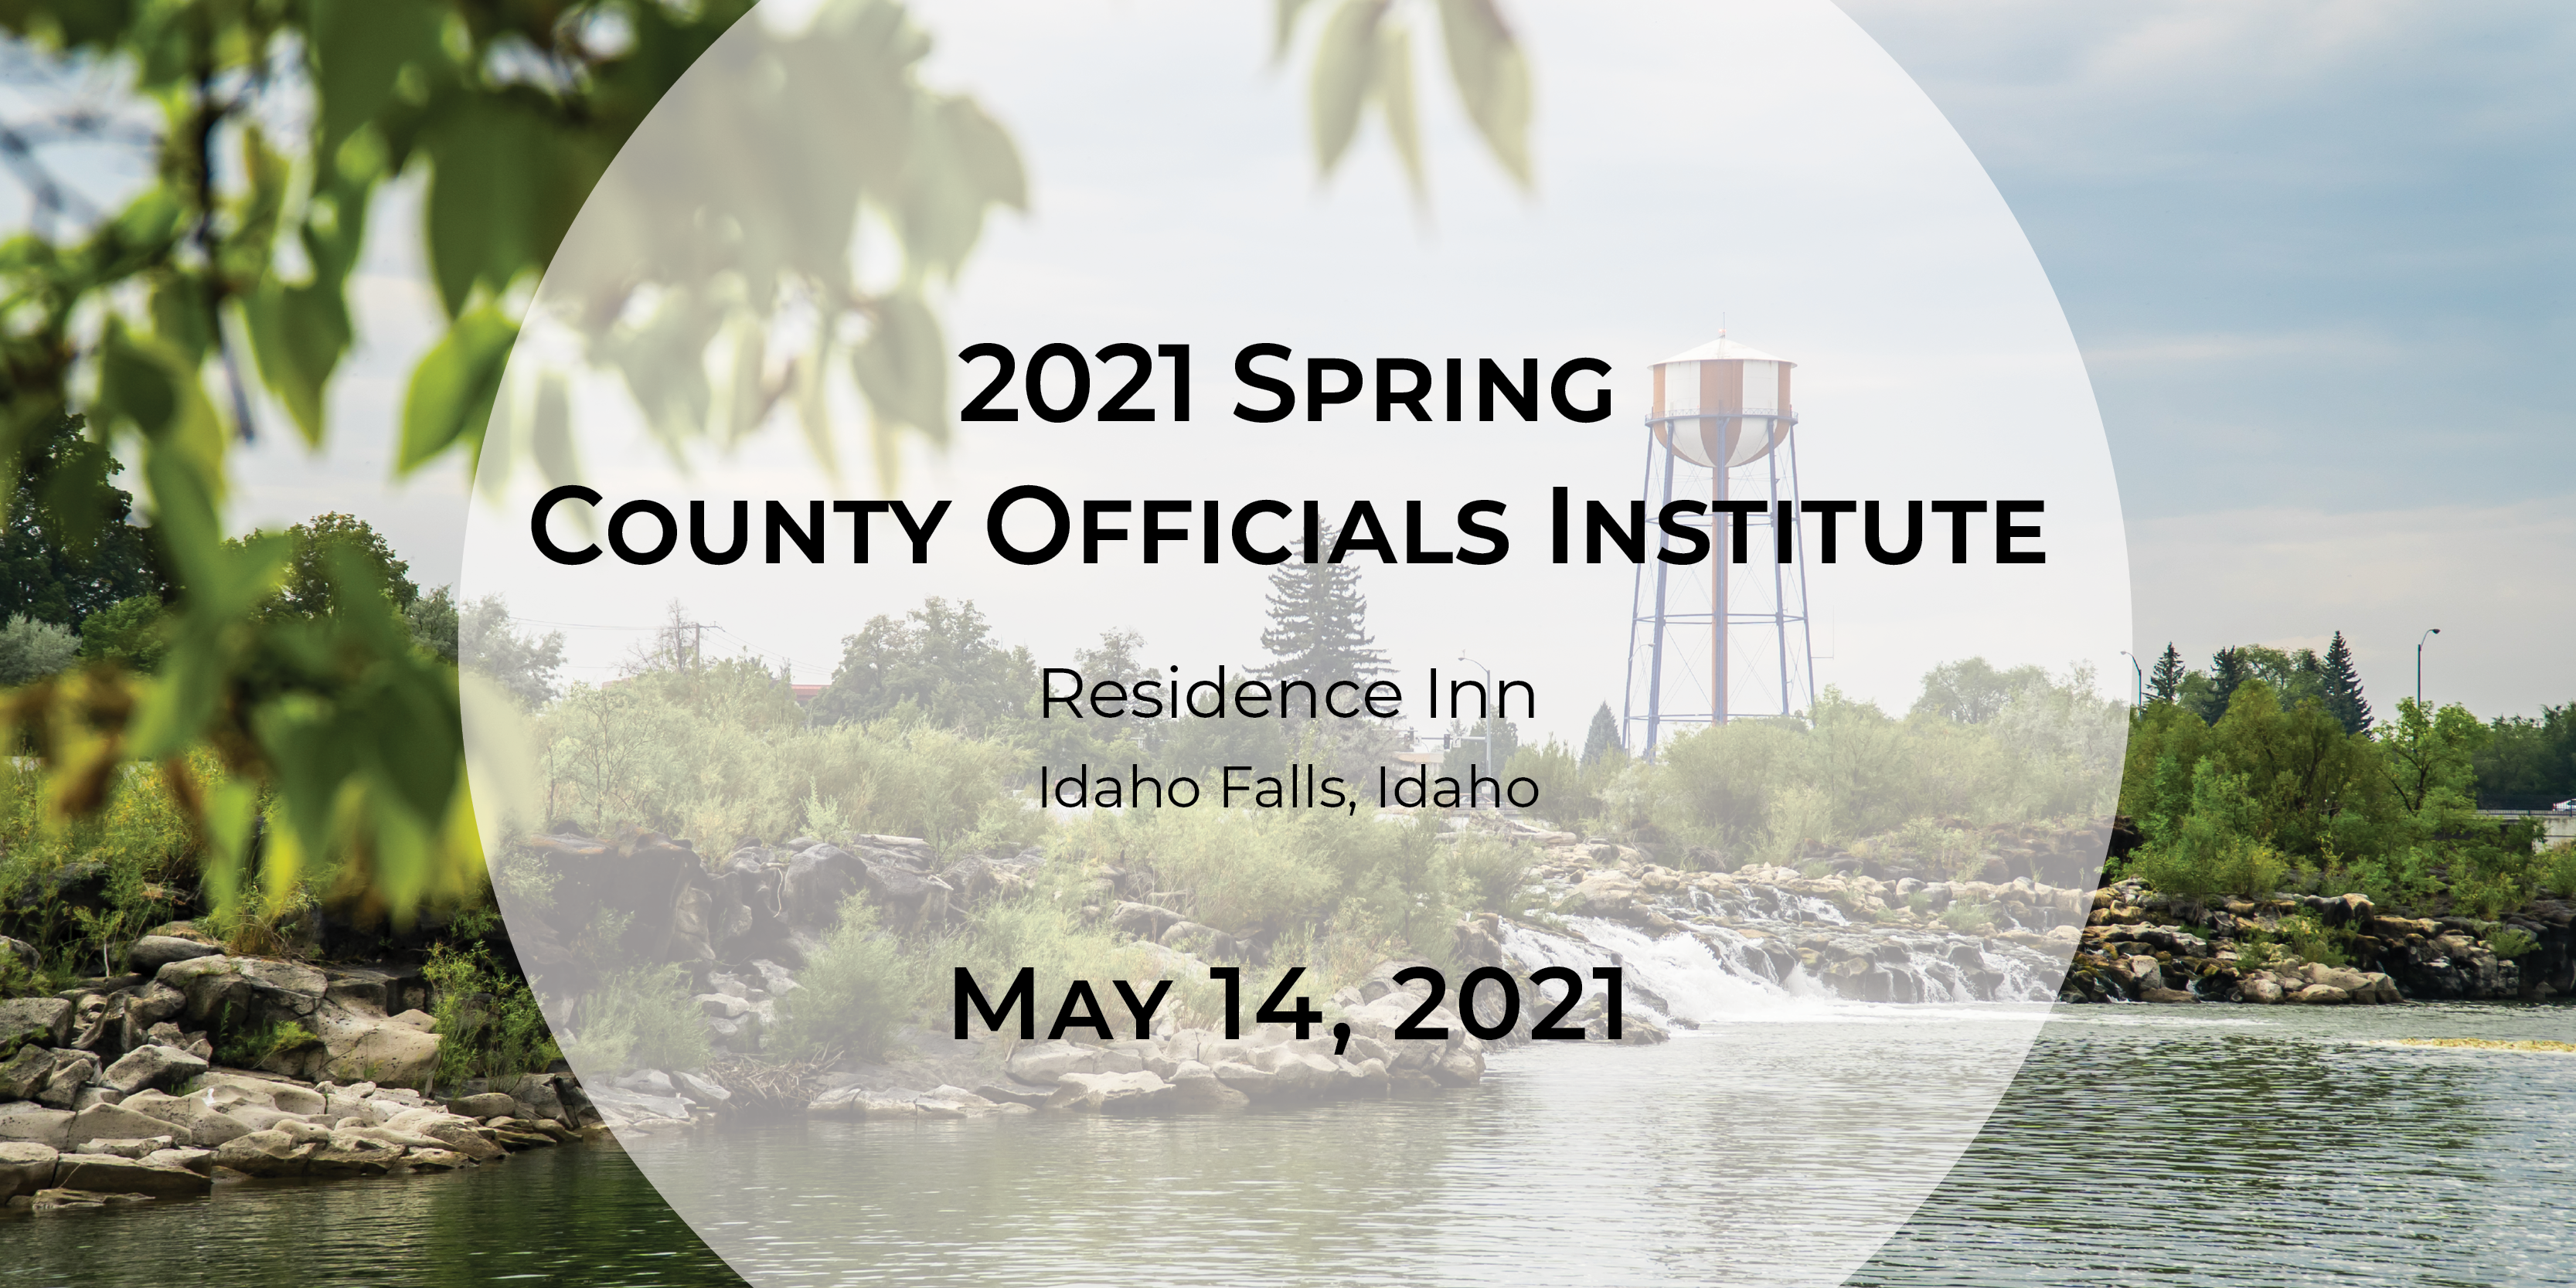 2021 Spring County Officials Institute – Idaho Falls